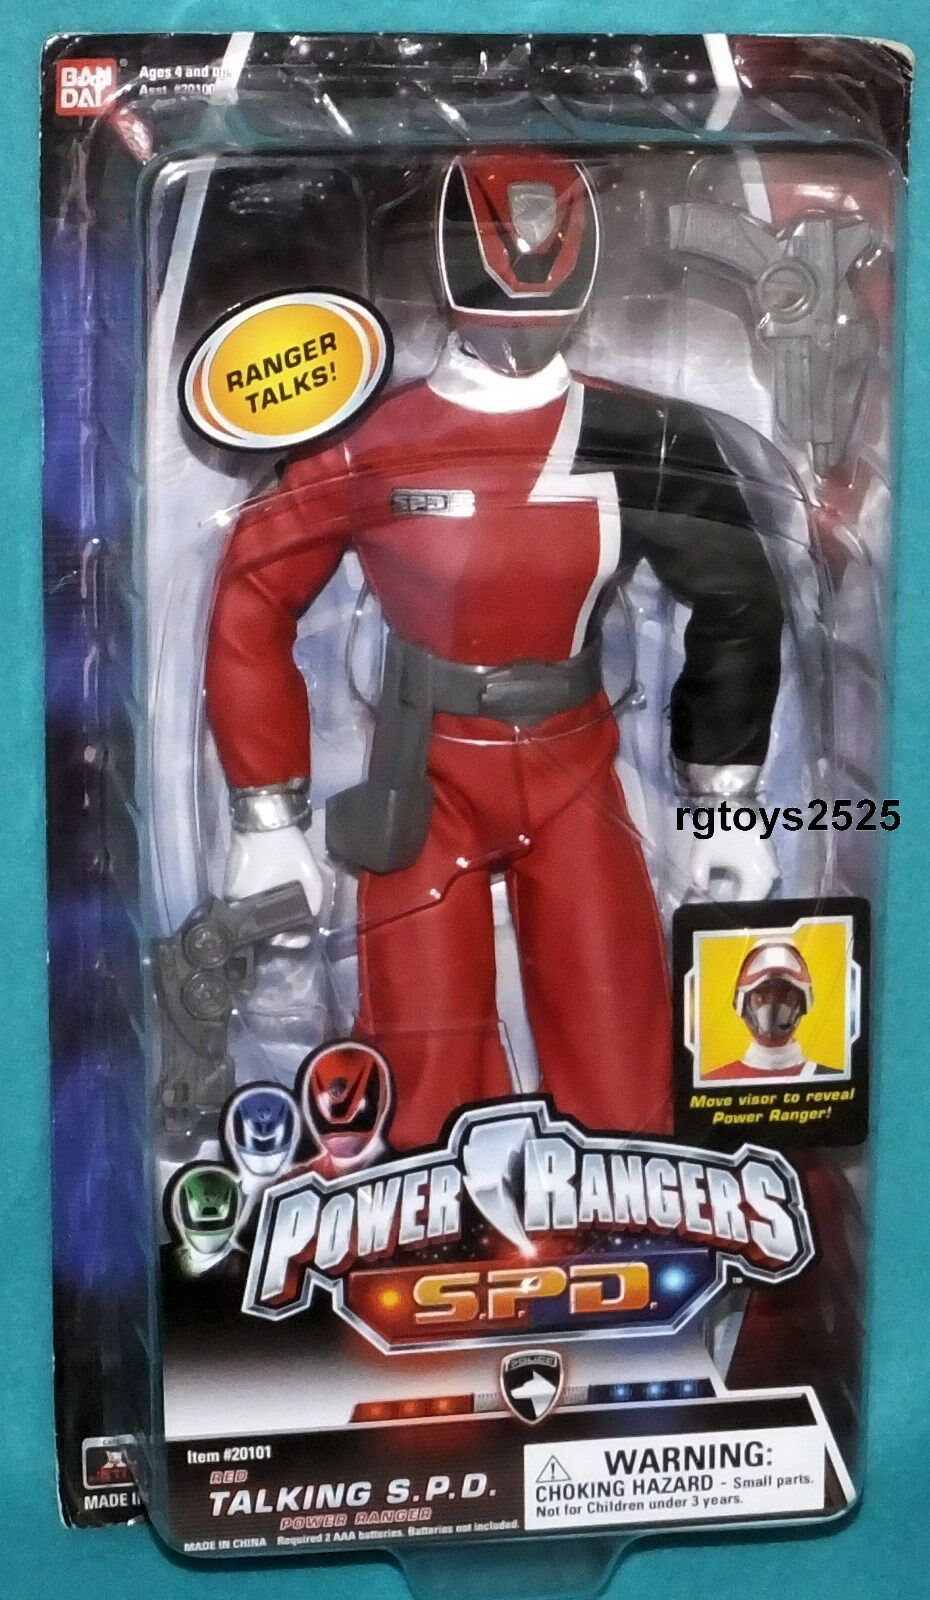 Power Rangers SPD rouge 12   Talking Ranger Factory Sealed nouveau 2004  prix ultra bas